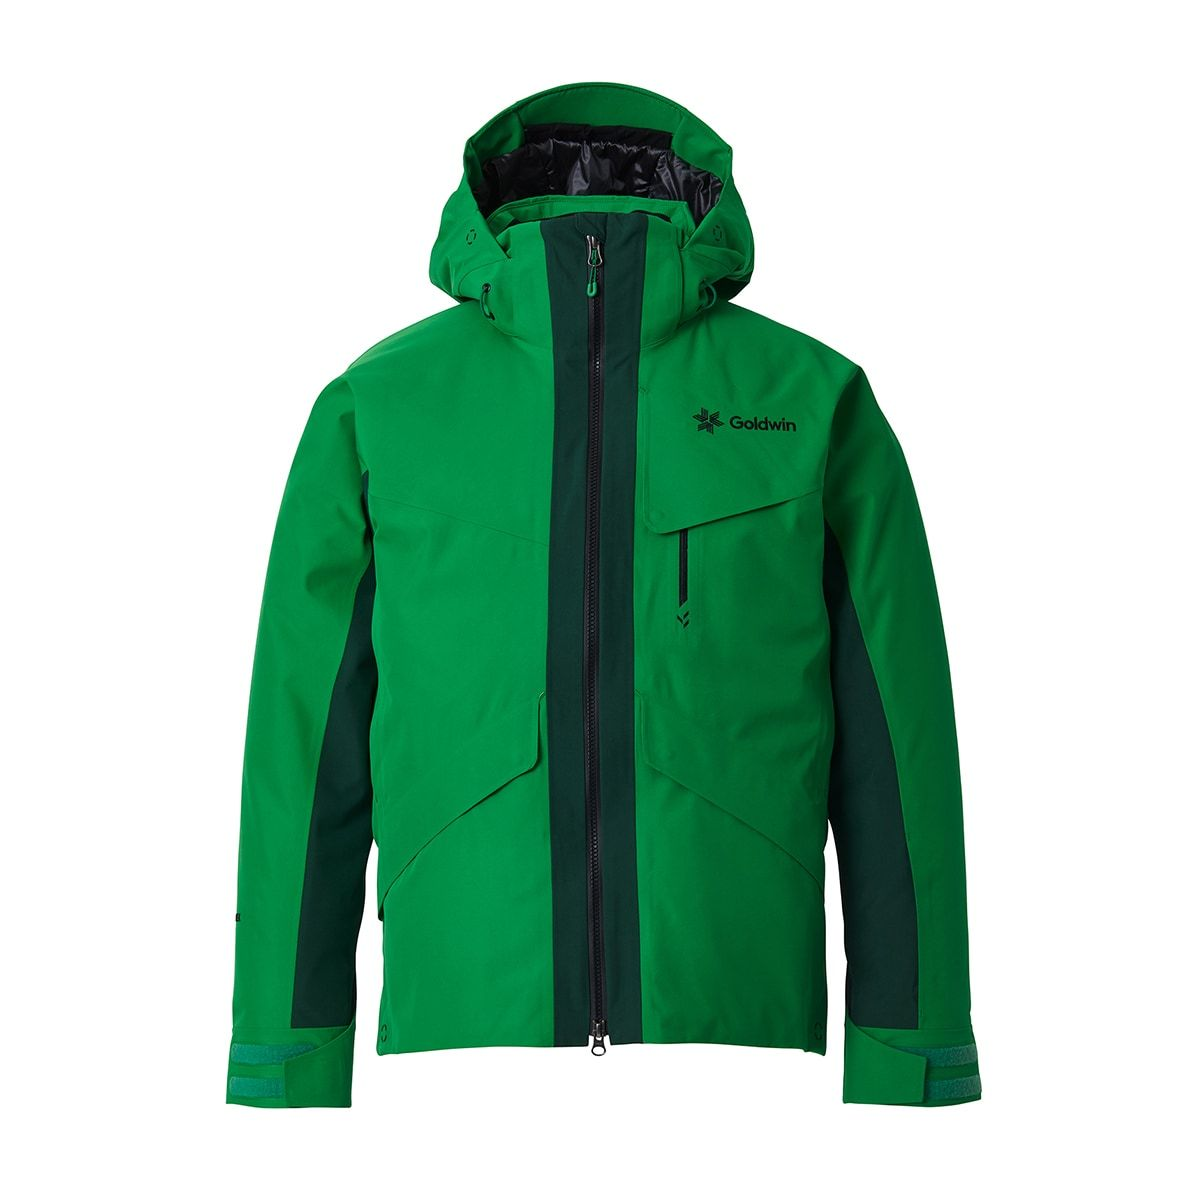 COLOR: MG